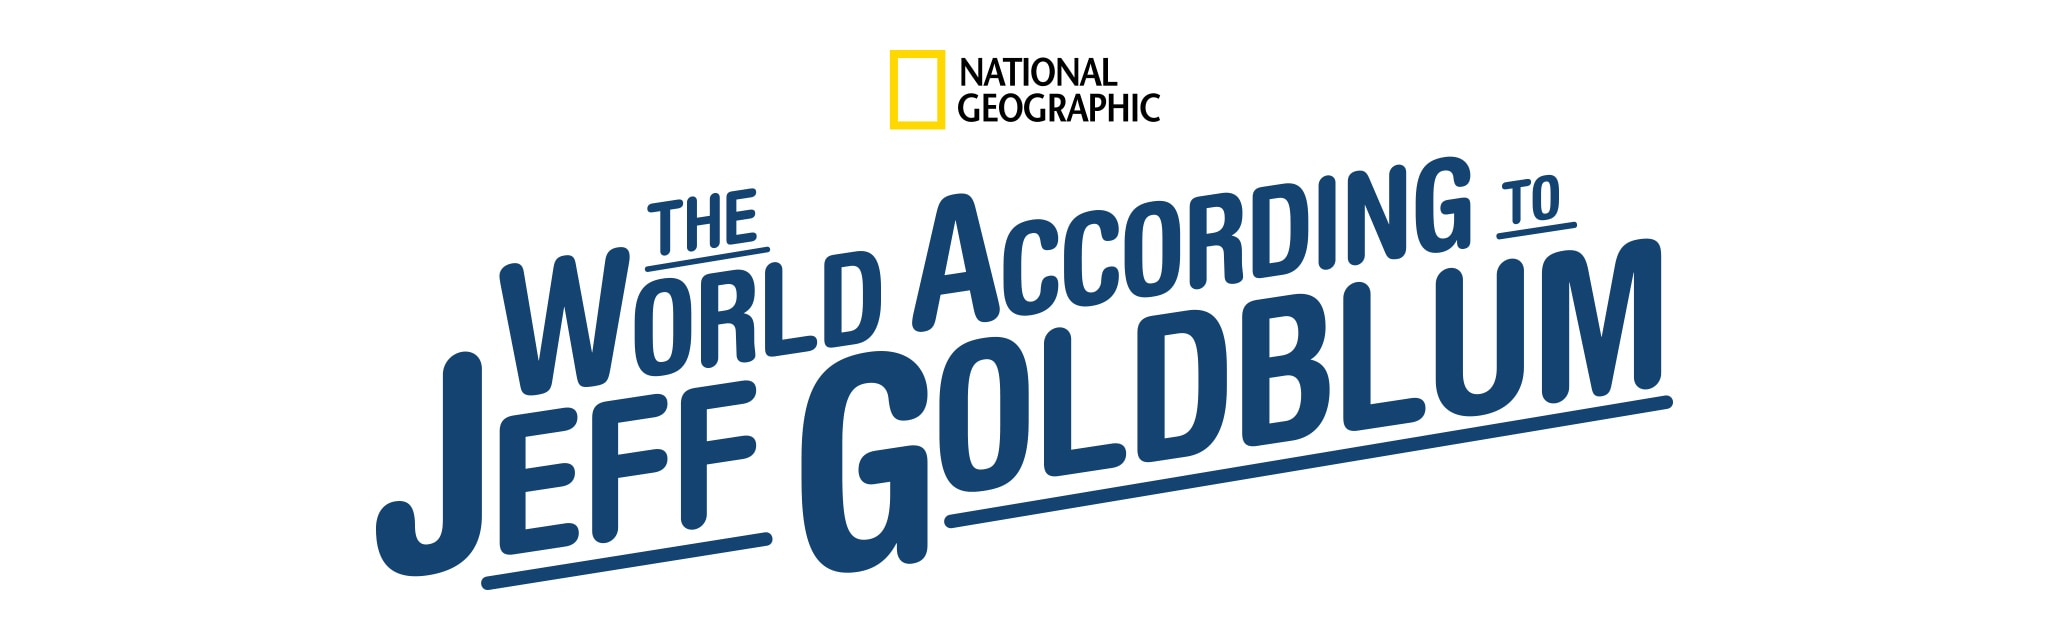 National Geographic | The World According to Jeff Goldblum